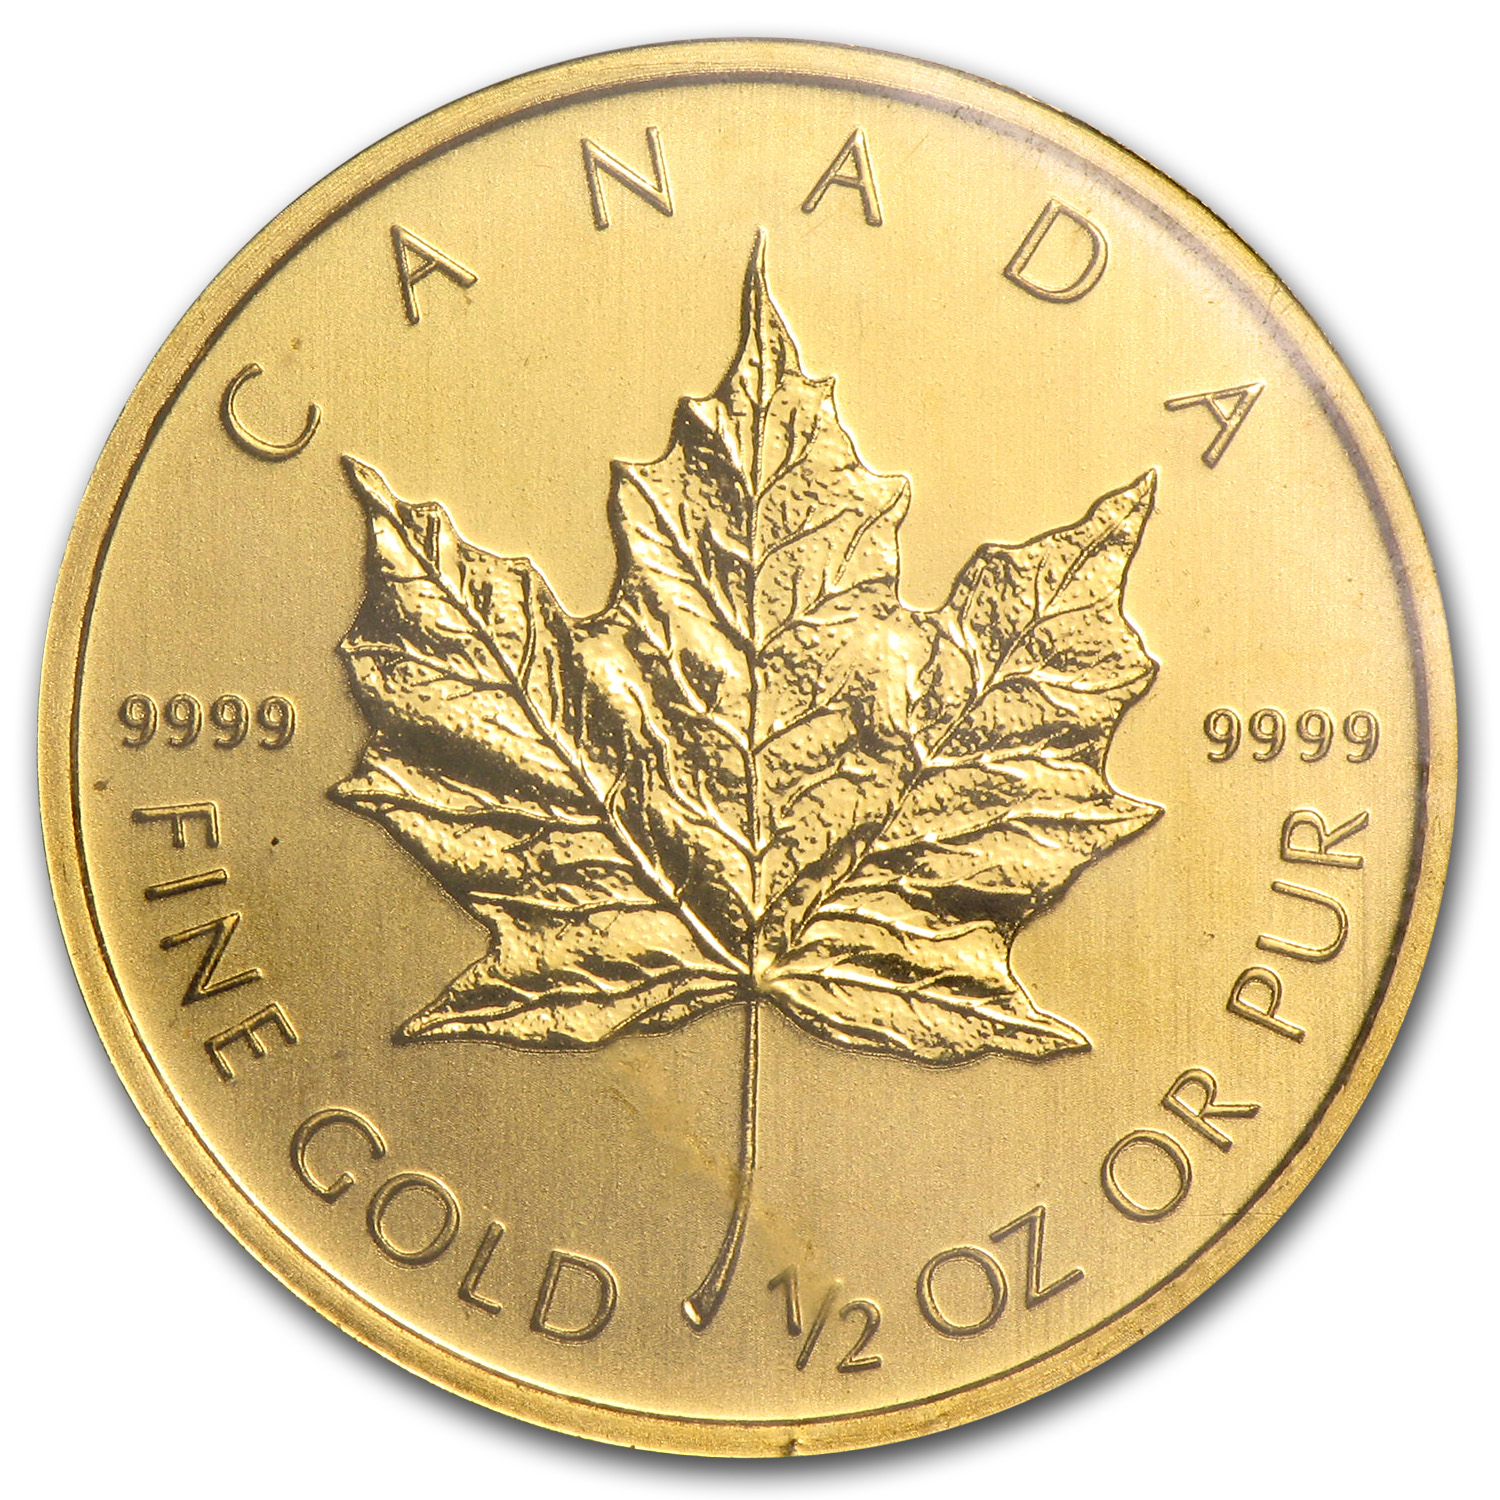 2011 1/2 oz Gold Canadian Maple Leaf BU